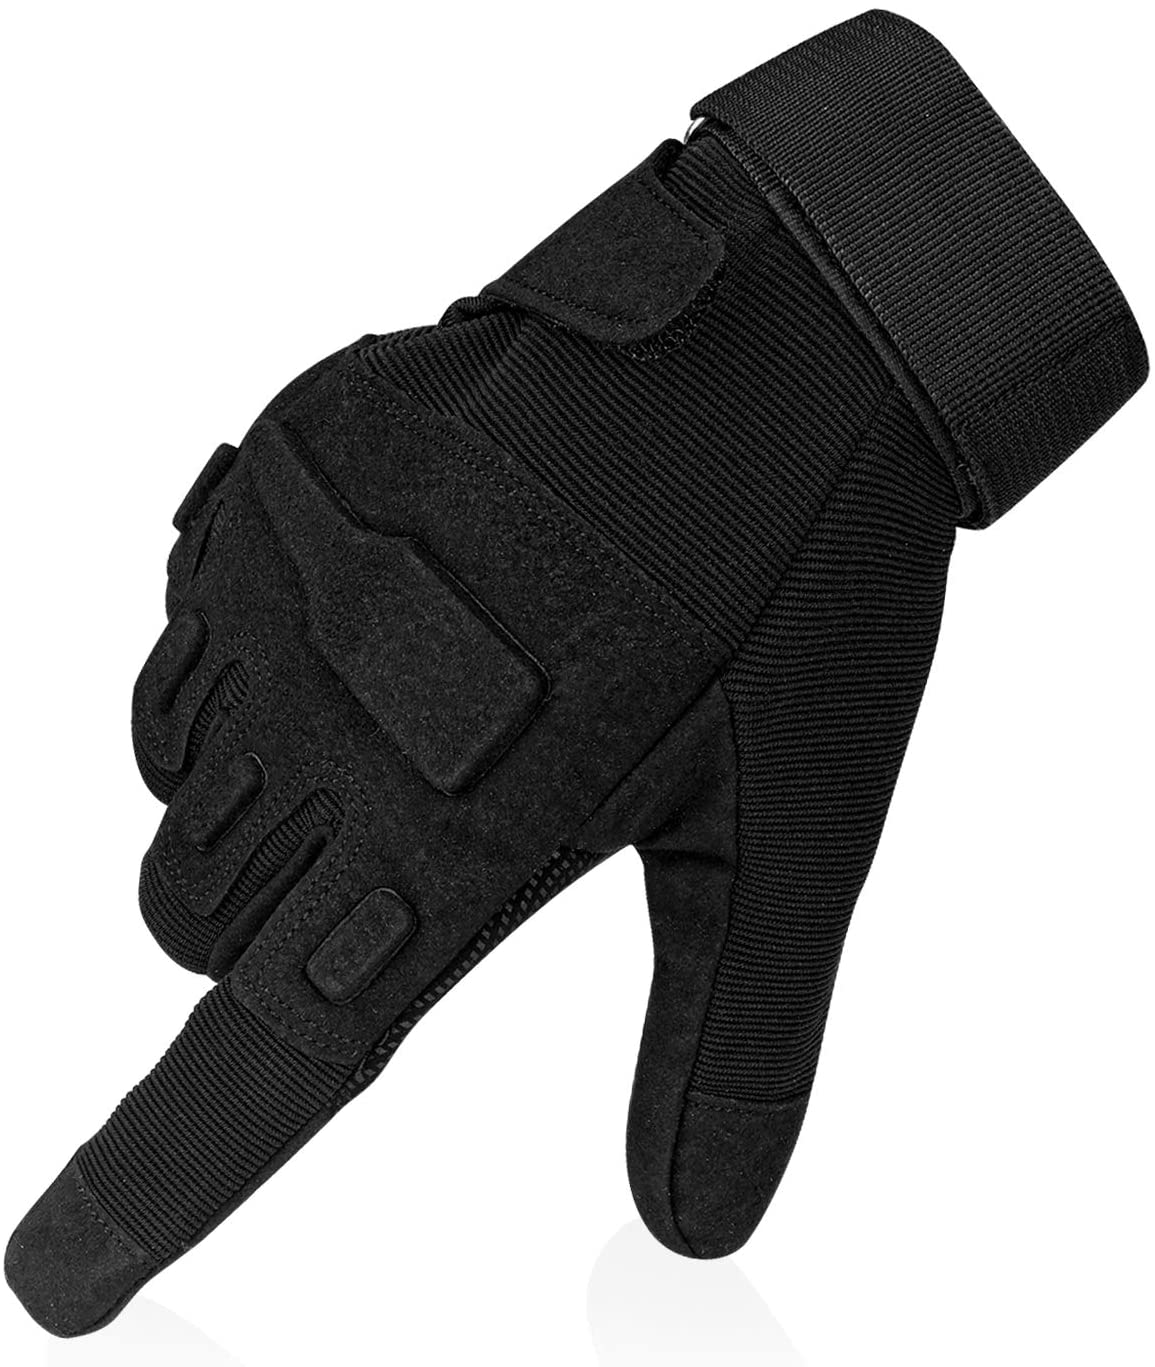 Flexzion Full Finger Tactical Gloves -Black (XL) Anti-Skid Protective Gear w/Knuckle Paddings, Multi-Function Sports Gloves for Motorcycle Cycling Airsoft Military Combat Army Training Outdoor